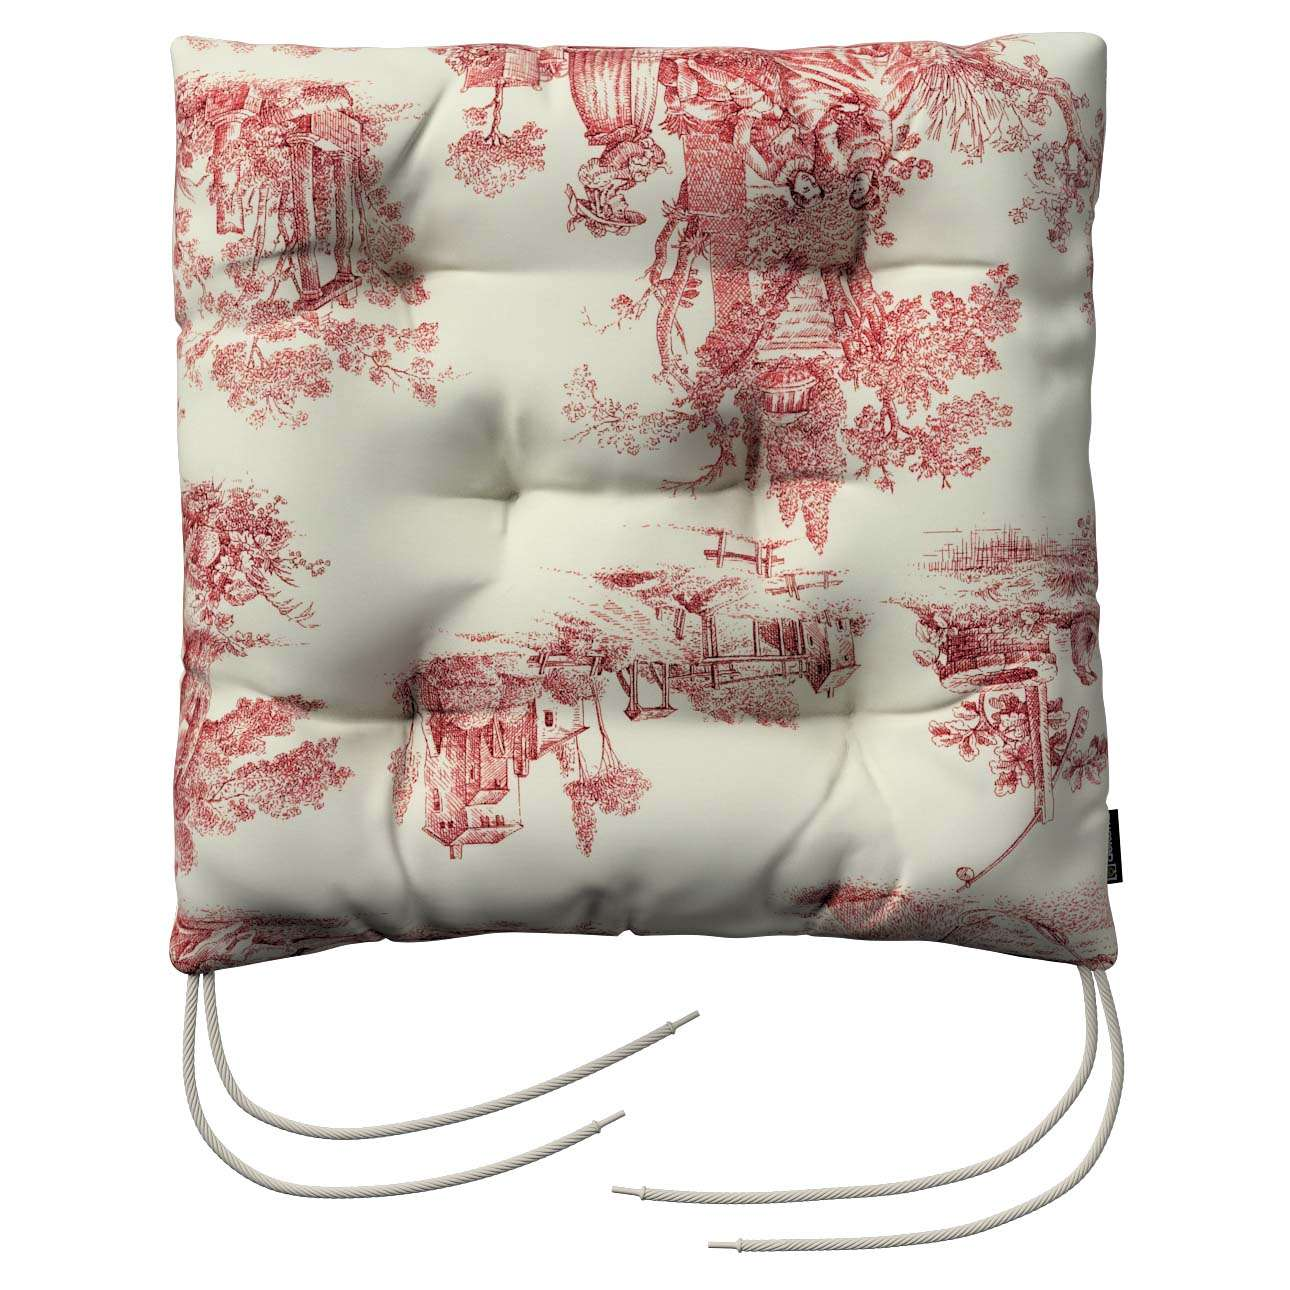 Jack seat pad with ties in collection Avinon, fabric: 132-15